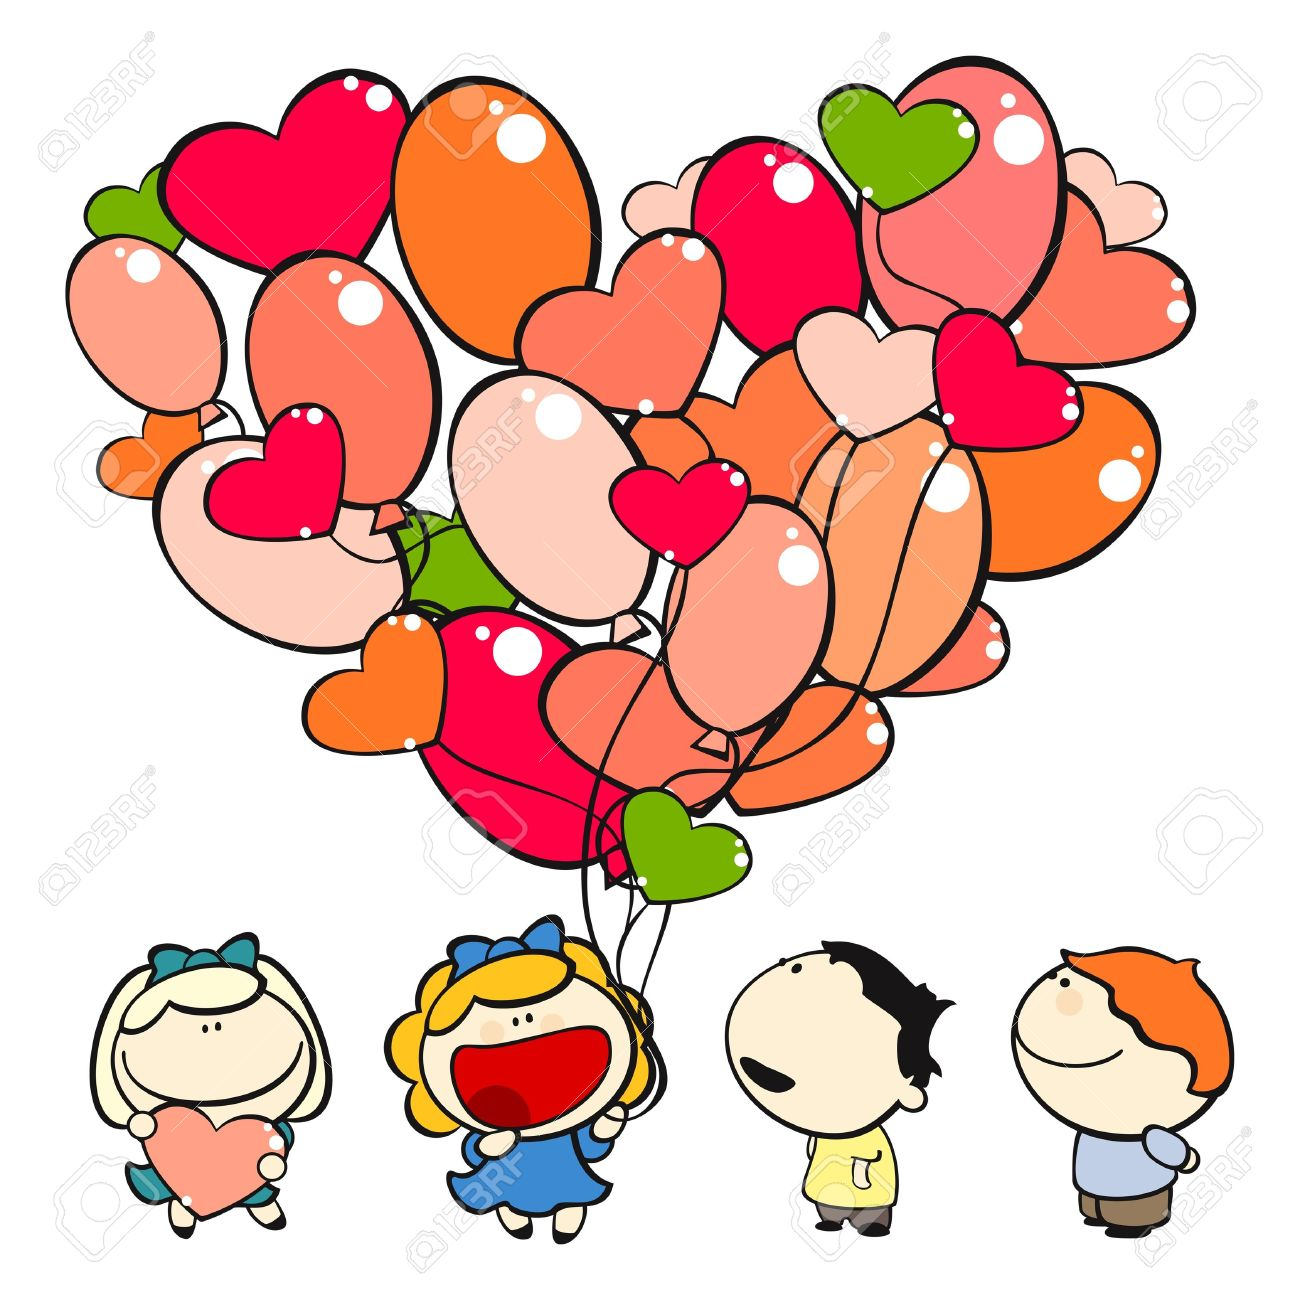 Funny Clipart For Kids | Free download on ClipArtMag